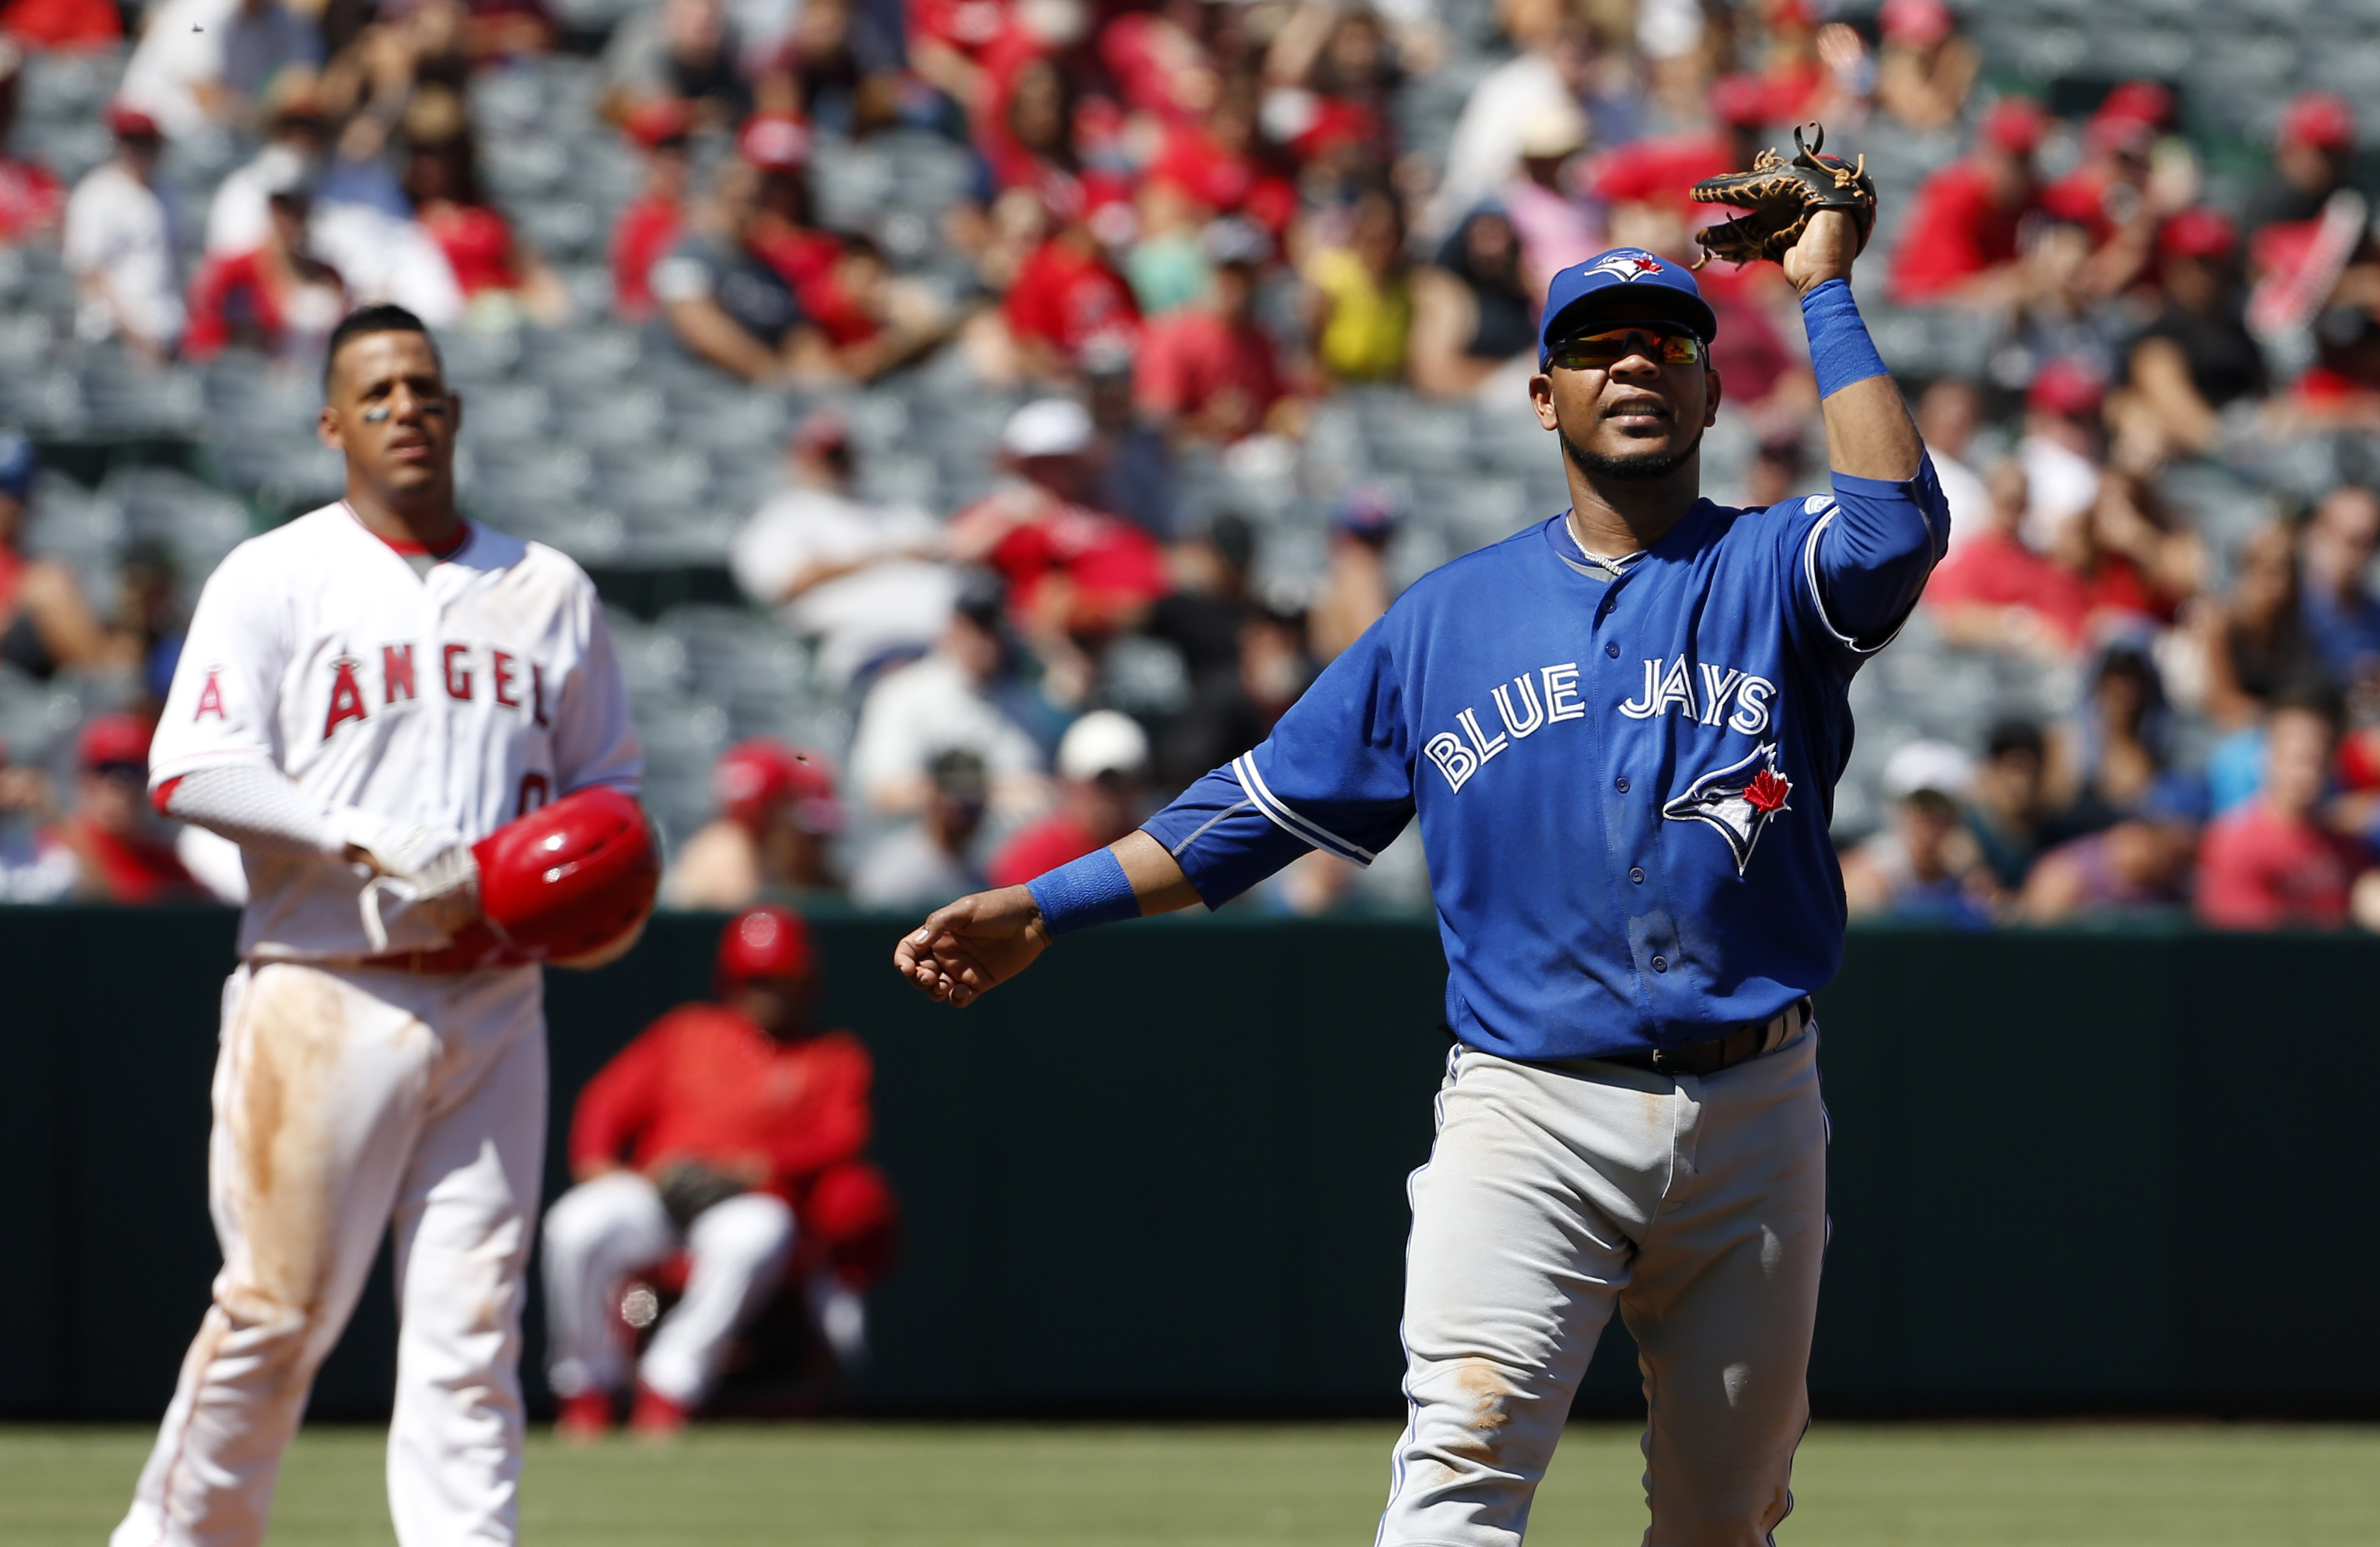 Toronto Blue Jays first baseman Edwin Encarnacion waves his glove at a swarm of bees in the third inning of a baseball game against the Los Angeles Angels in Anaheim, Calif., Sunday, Sept. 18, 2016. (AP Photo/Christine Cotter)